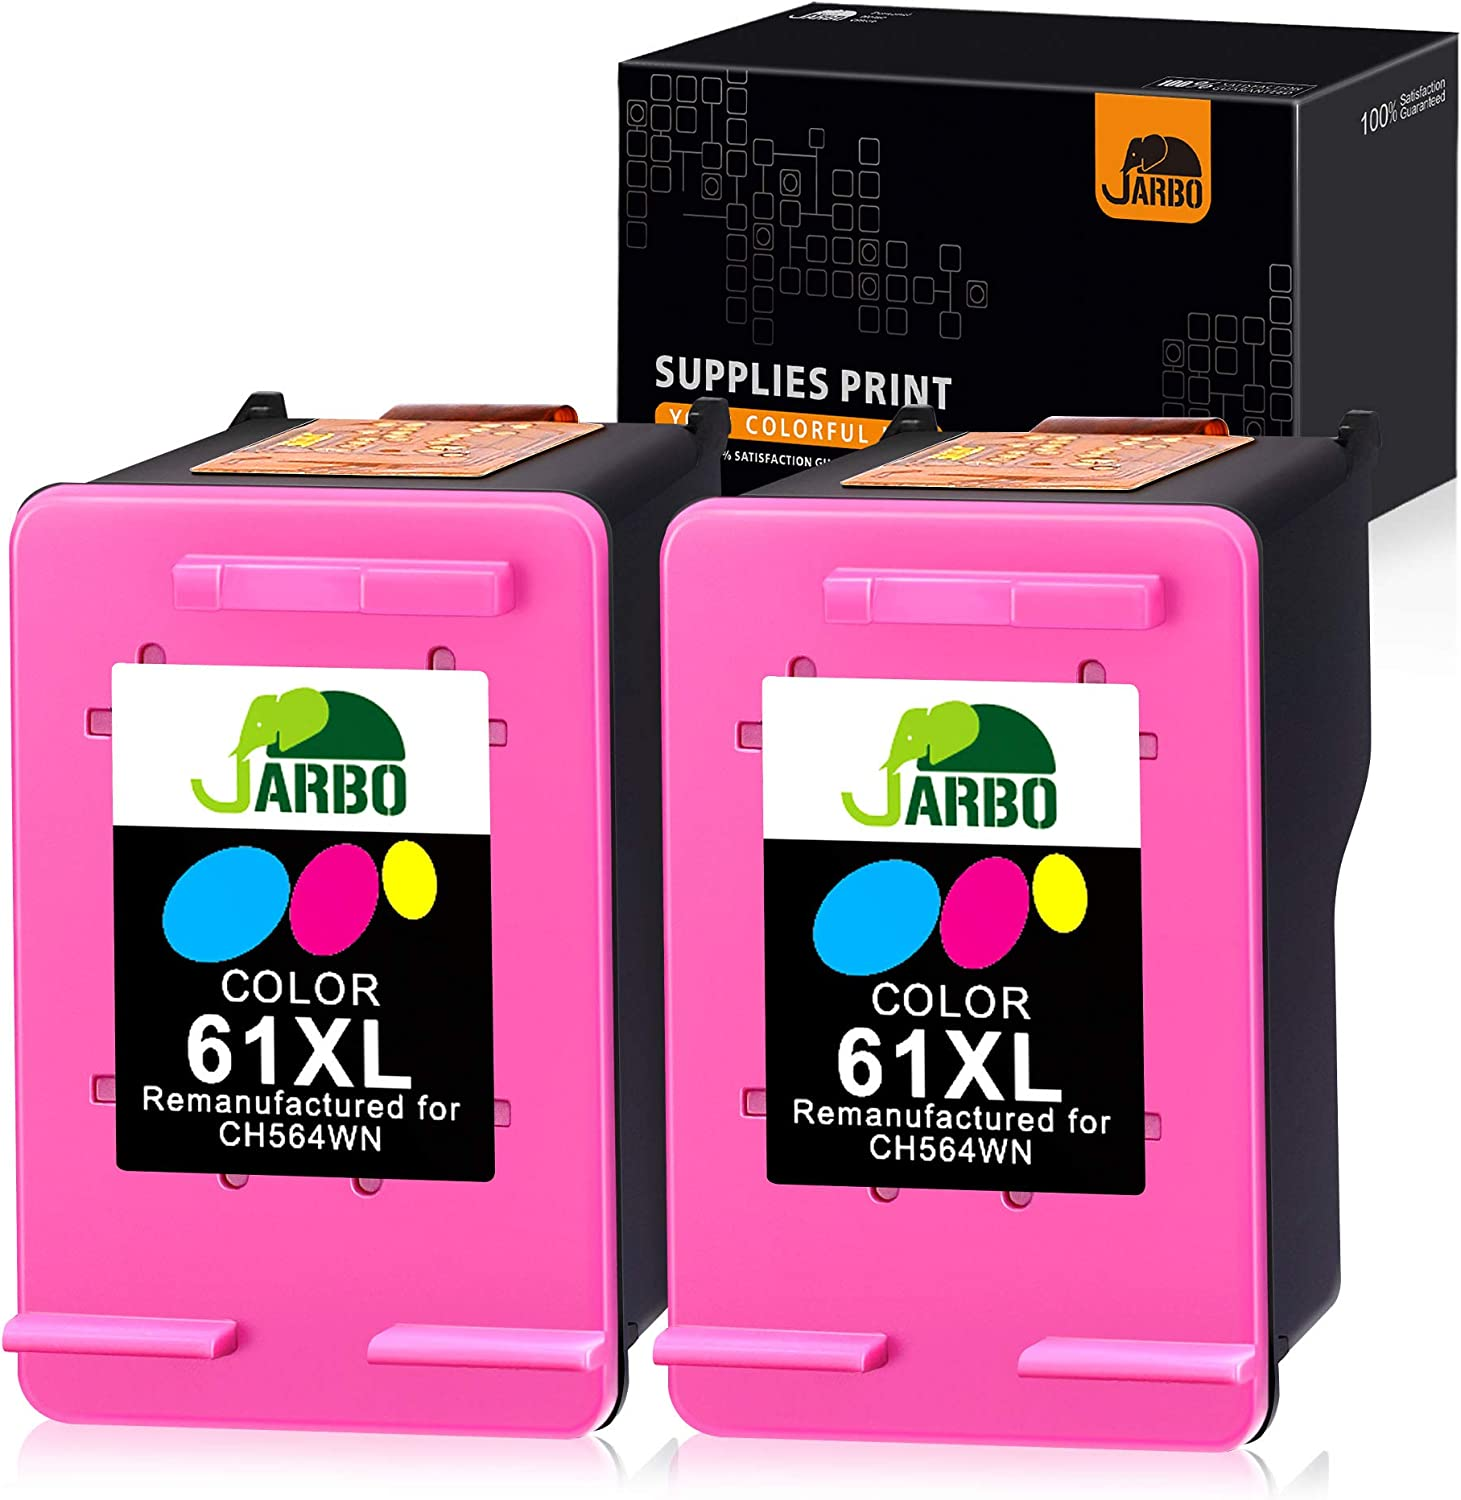 JARBO Remanufactured Ink Cartridge Replacement for HP 61 61XL Ink Cartridge, with Ink Level Display for HP Envy 4500 5530 5534 Deskjet 1000 1512 2540 3050 Officejet 4630 (2 Tri-Color, 2 Pack)